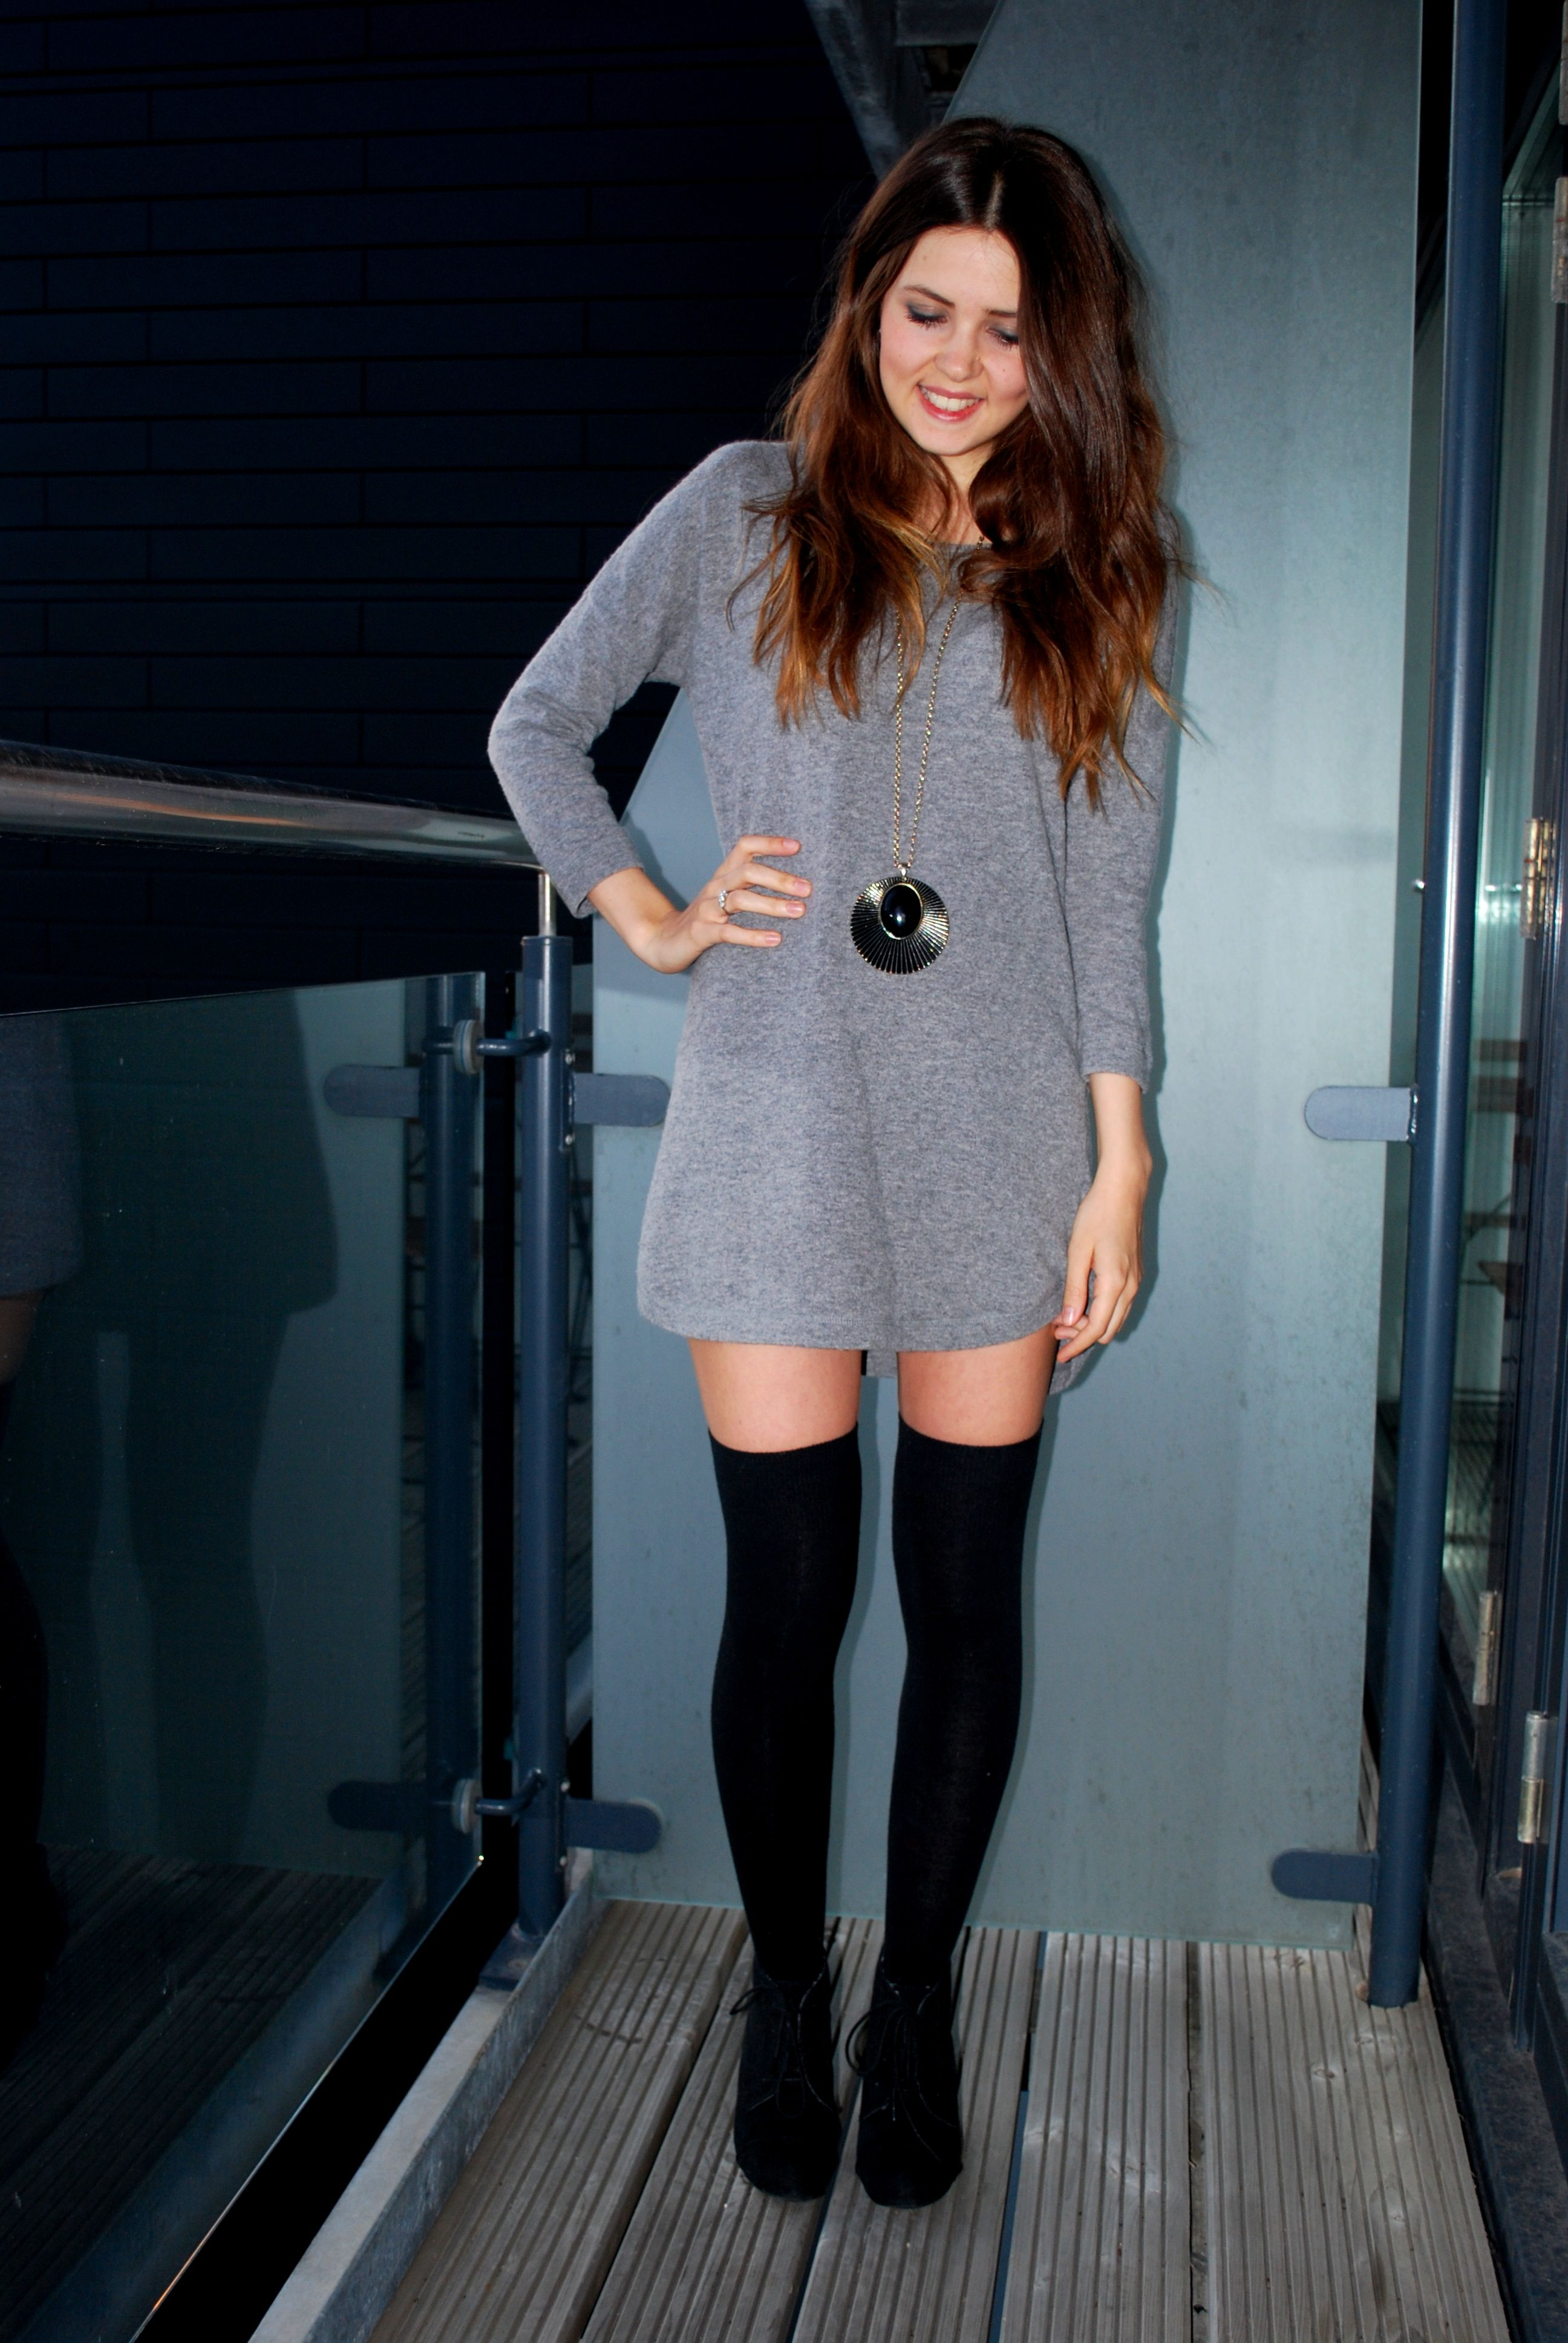 Over the Knee Socks both girls & guys can answer? - Fashion ...